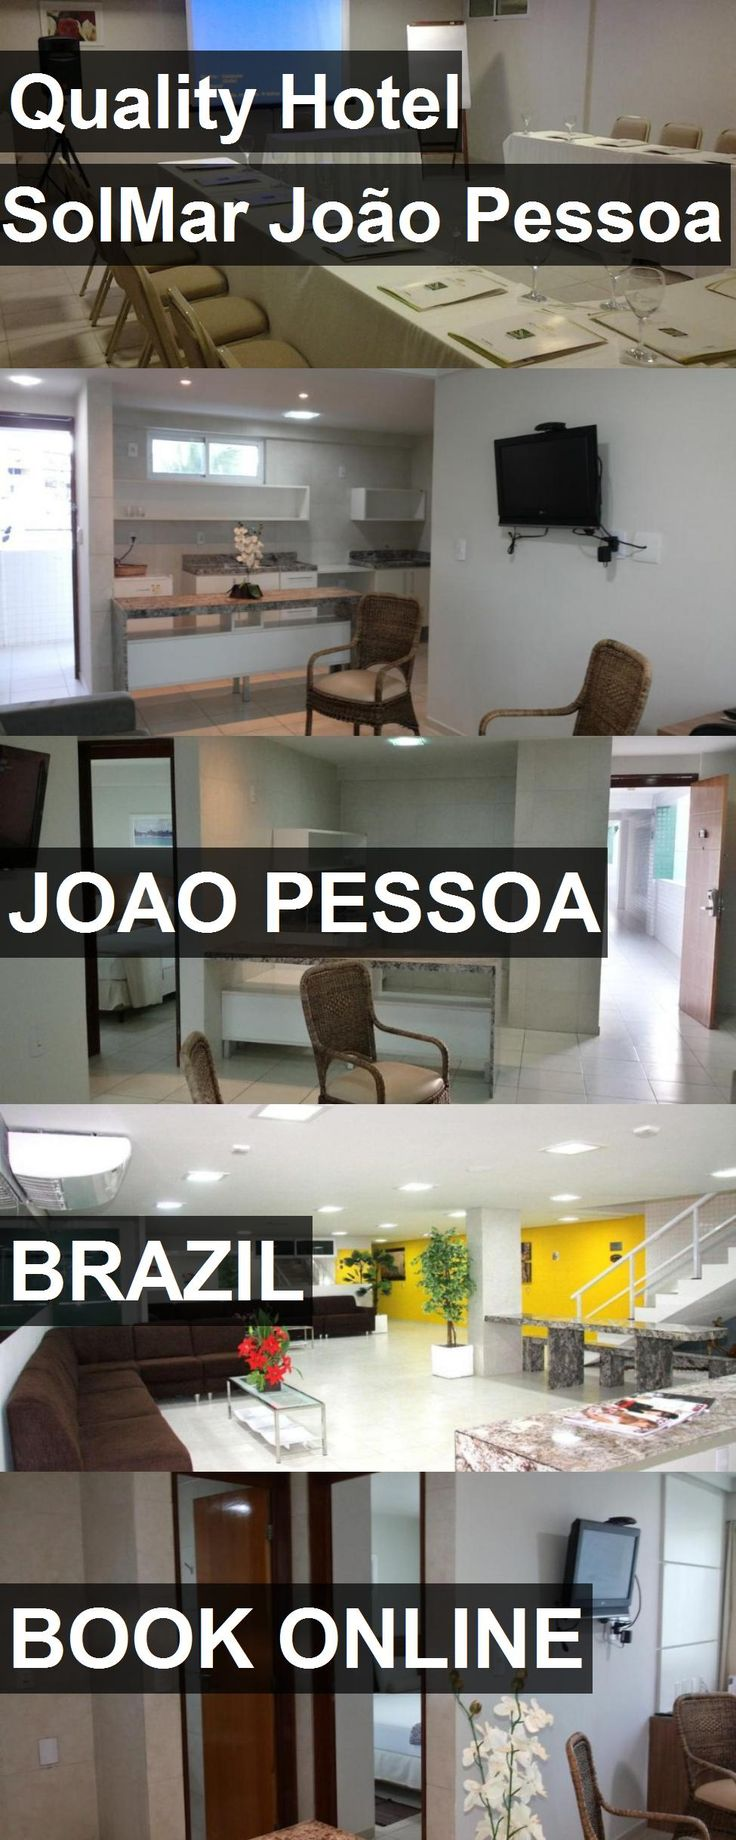 Quality Hotel SolMar João Pessoa in Joao Pessoa, Brazil. For more information, photos, reviews and best prices please follow the link. #Brazil #JoaoPessoa #travel #vacation #hotel